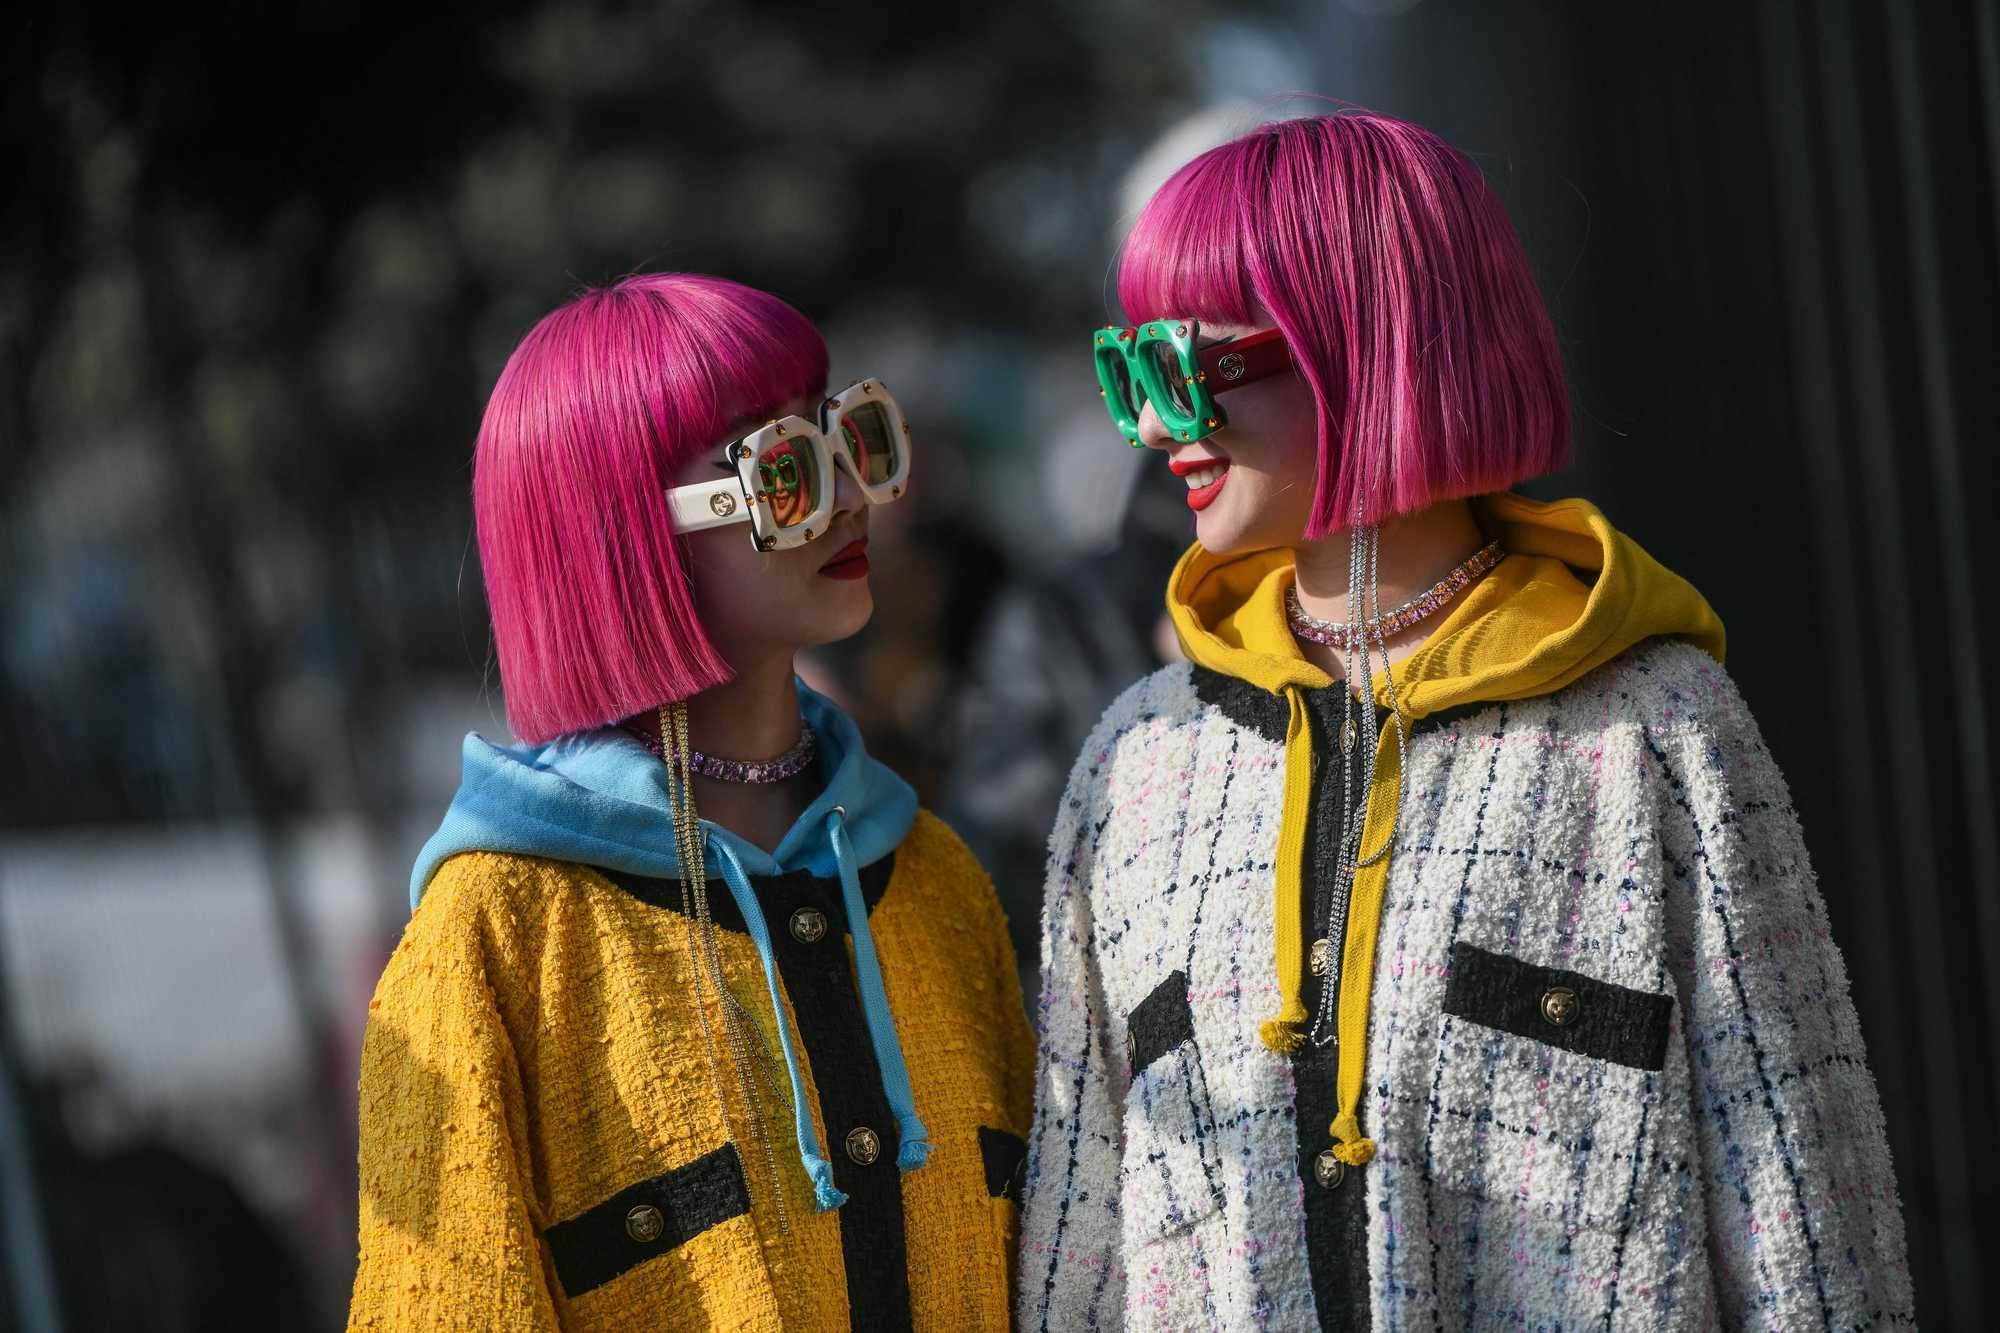 Spring hair colours: Shot of two models with neon pink bob hair, wearing raincoats and sunglasses